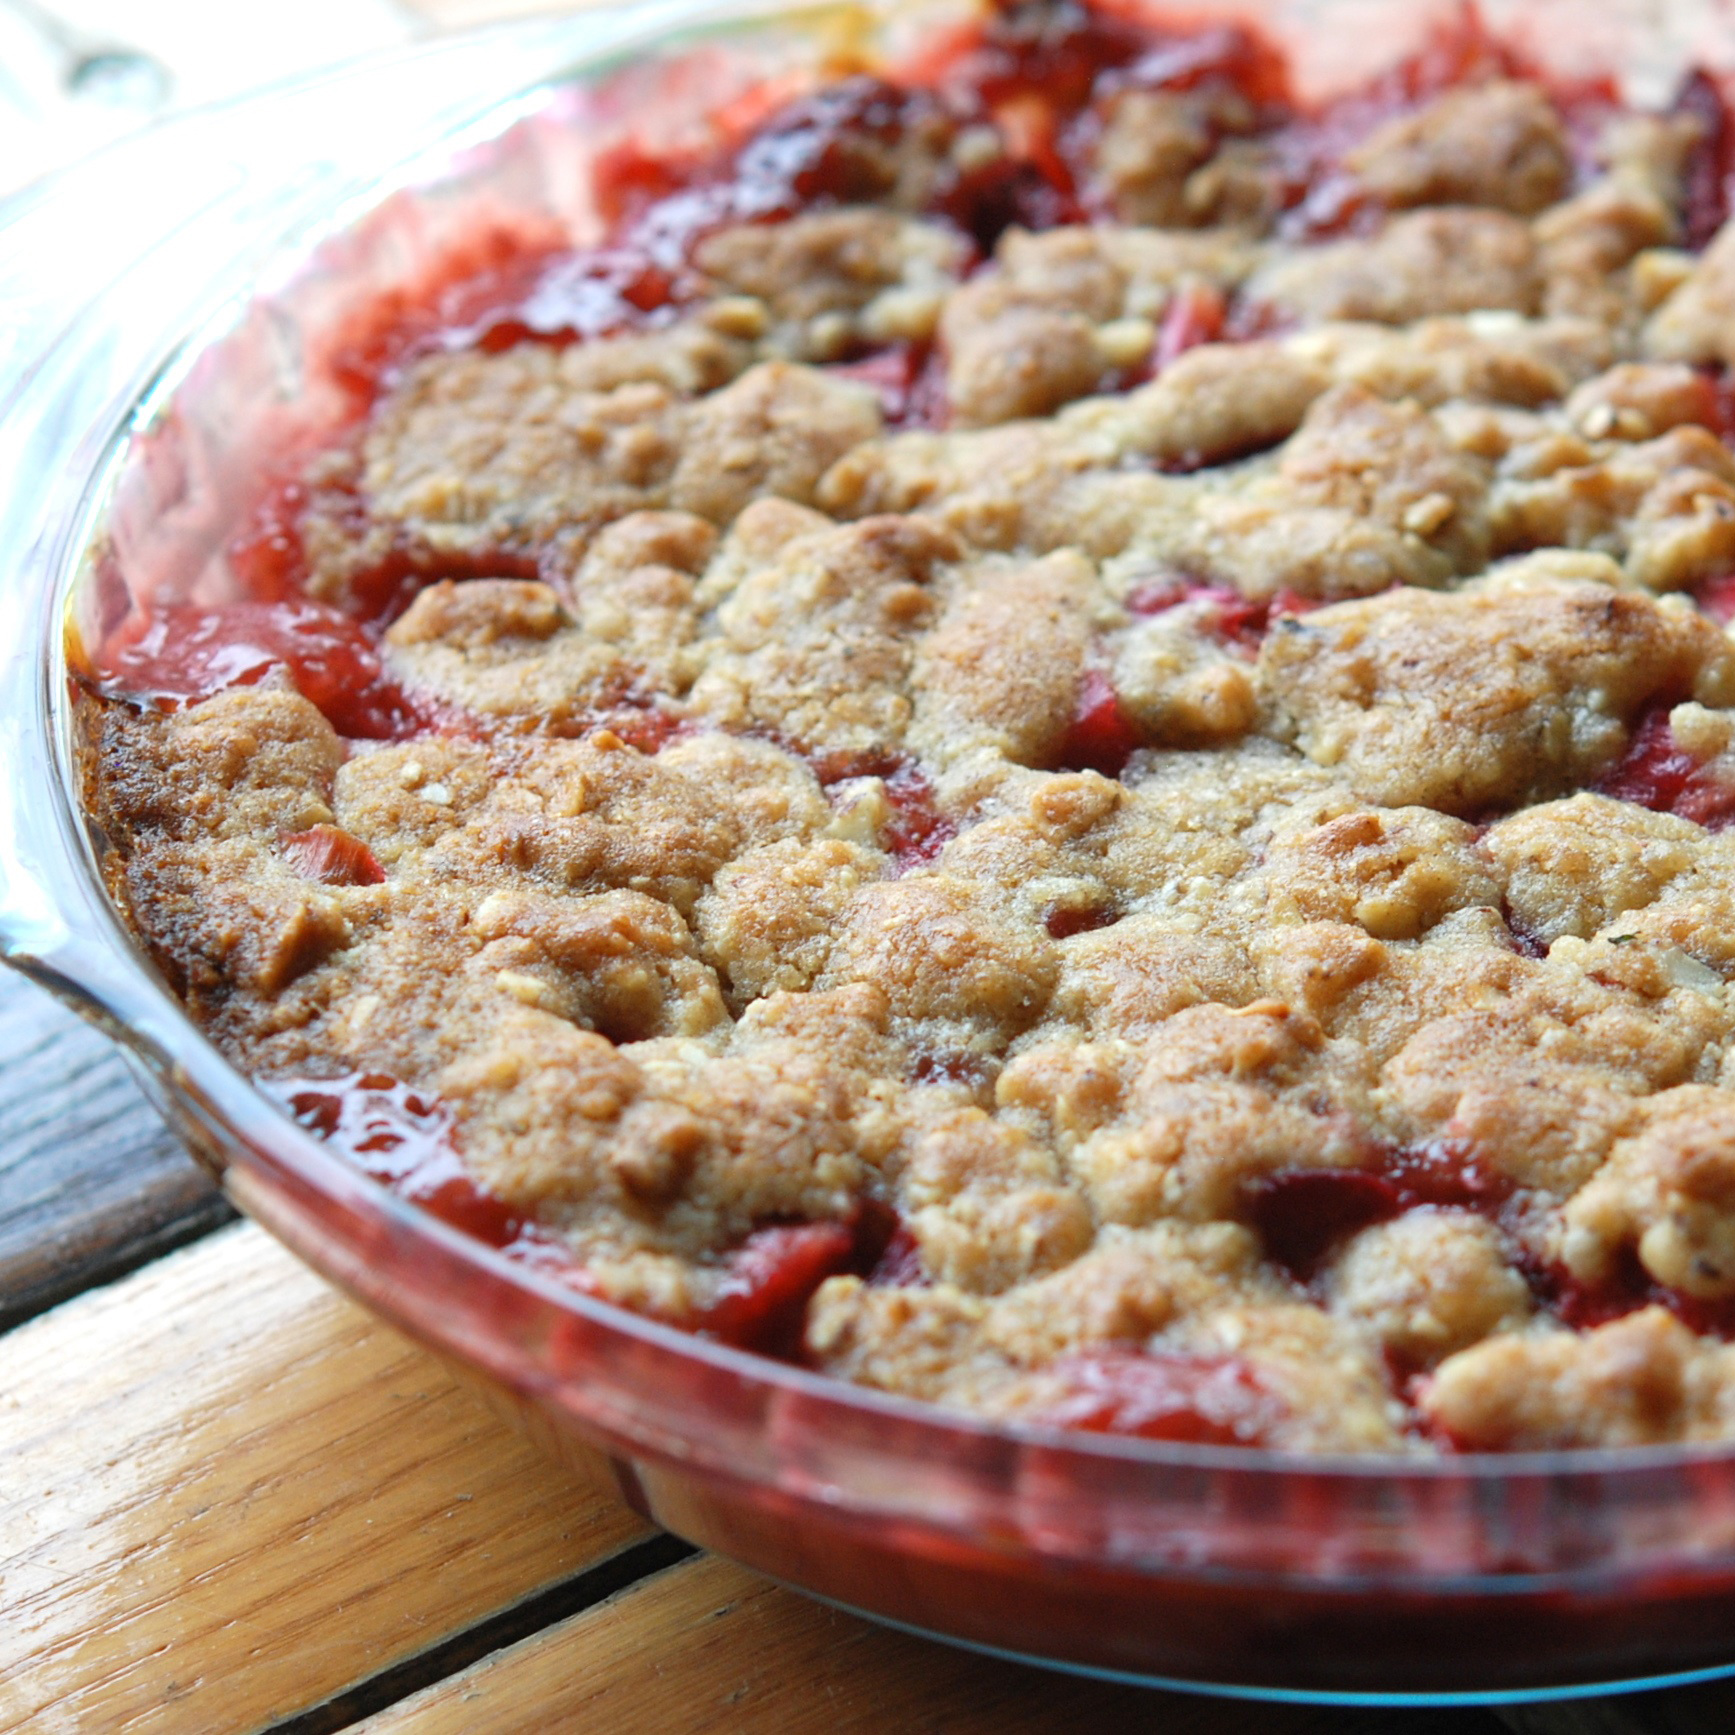 original-201207-r-zimmern-early-summer-strawberry-rhubarb-crumble.jpg